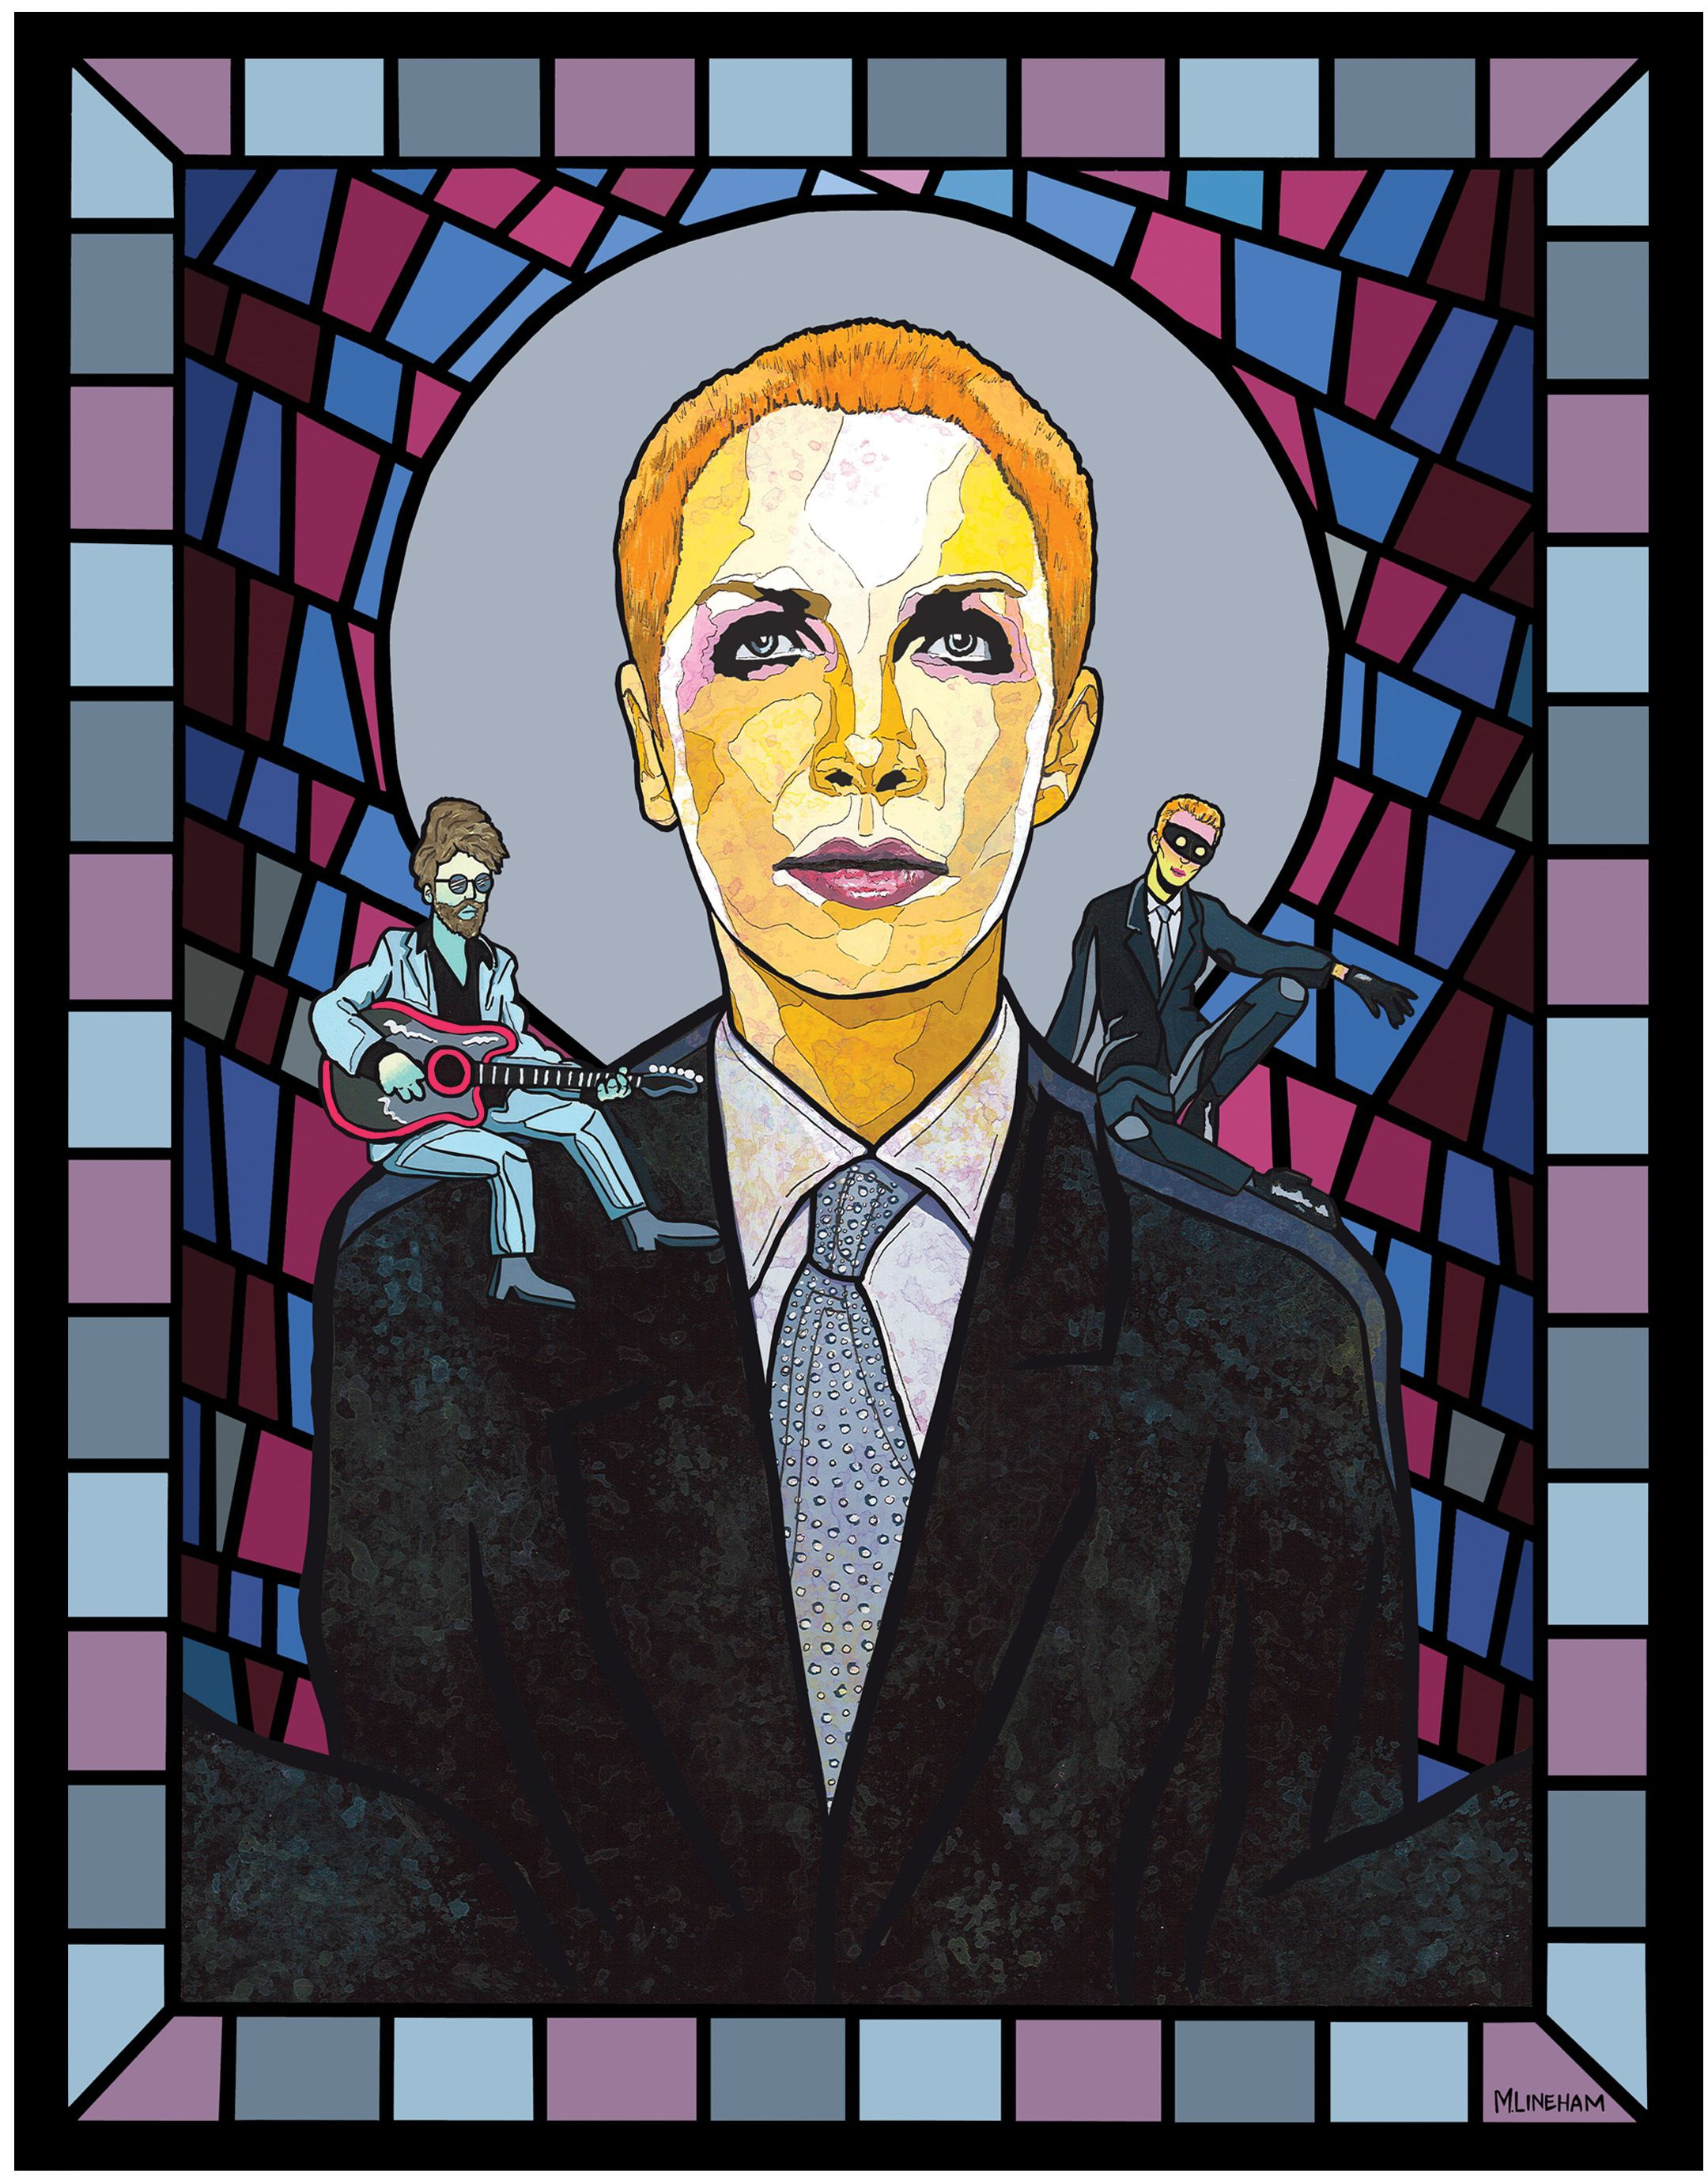 Saint Annie Lennox Eurythmics W Dave Stewart On Shoulder By Matthew Lineham